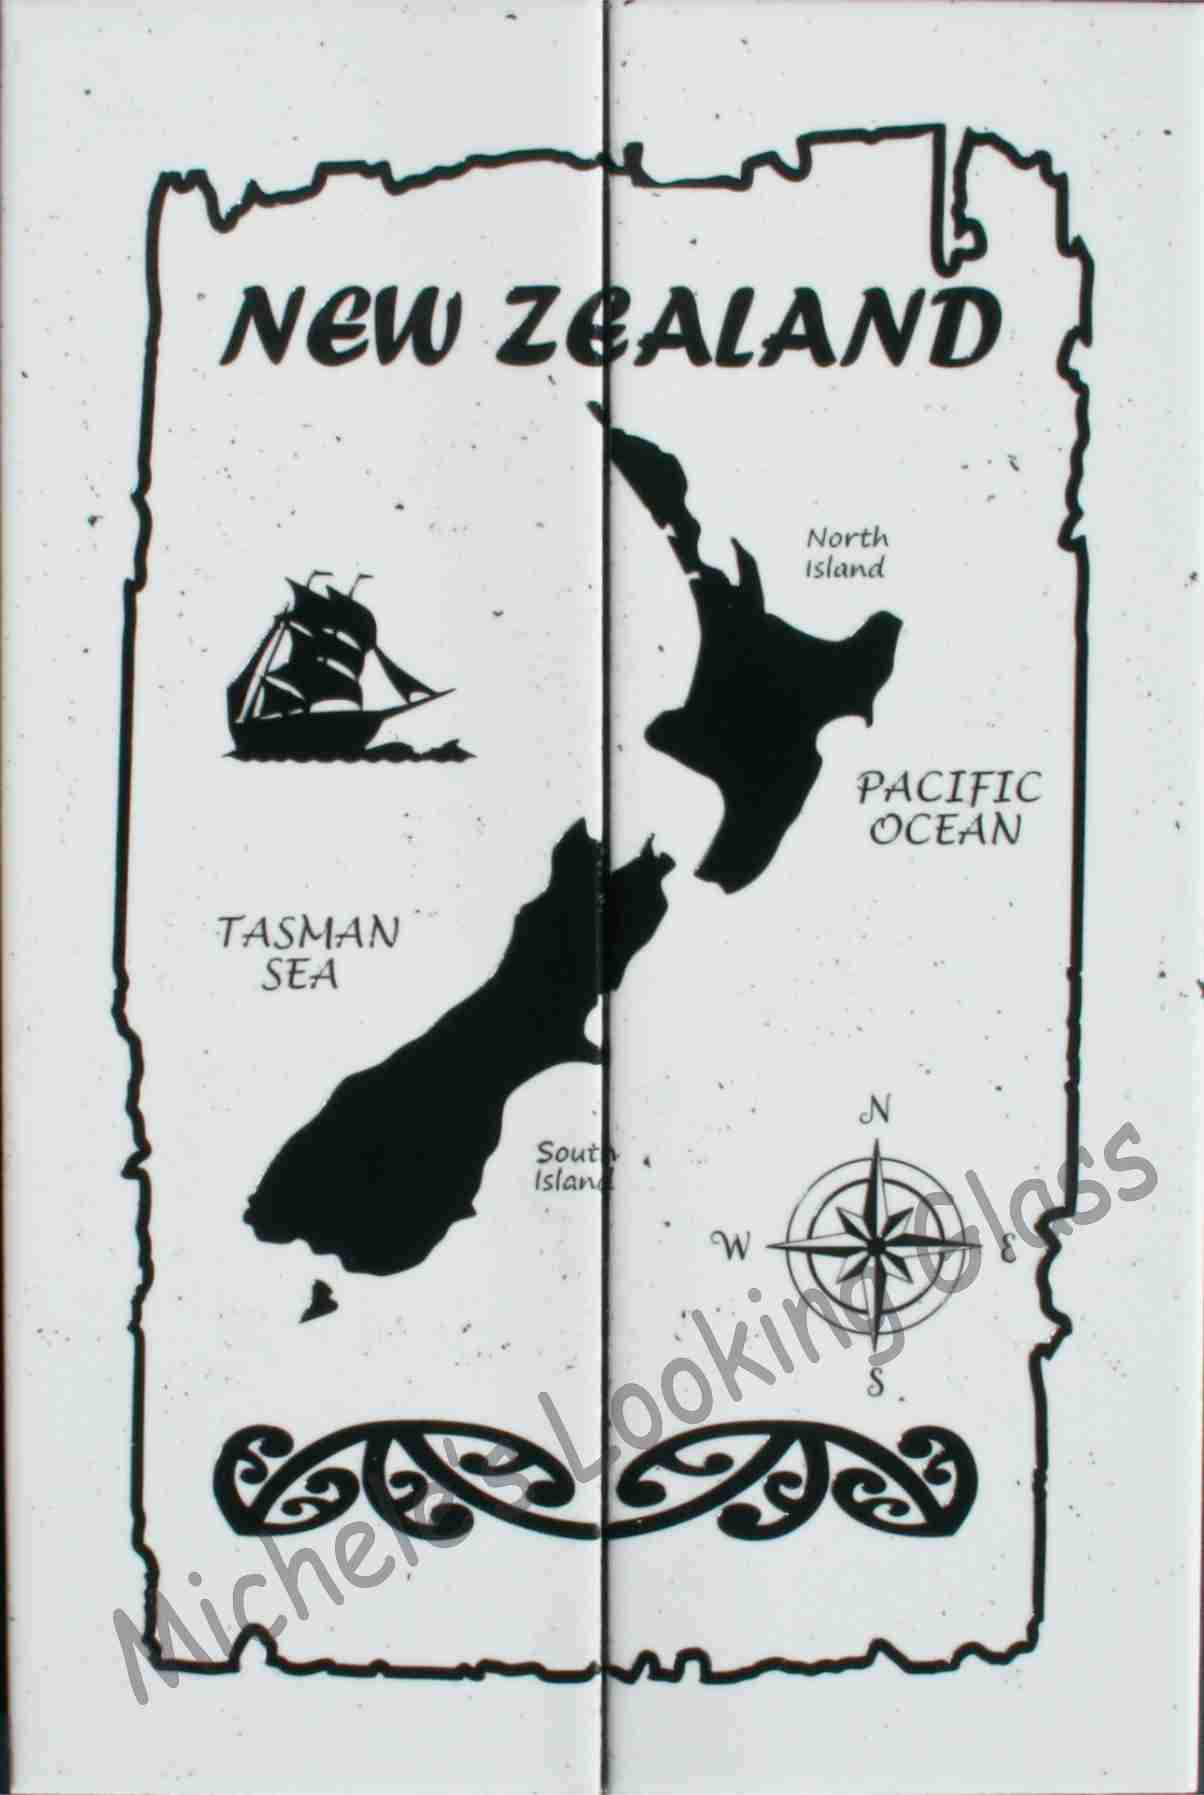 Map of NZ etched and painted onto tiles